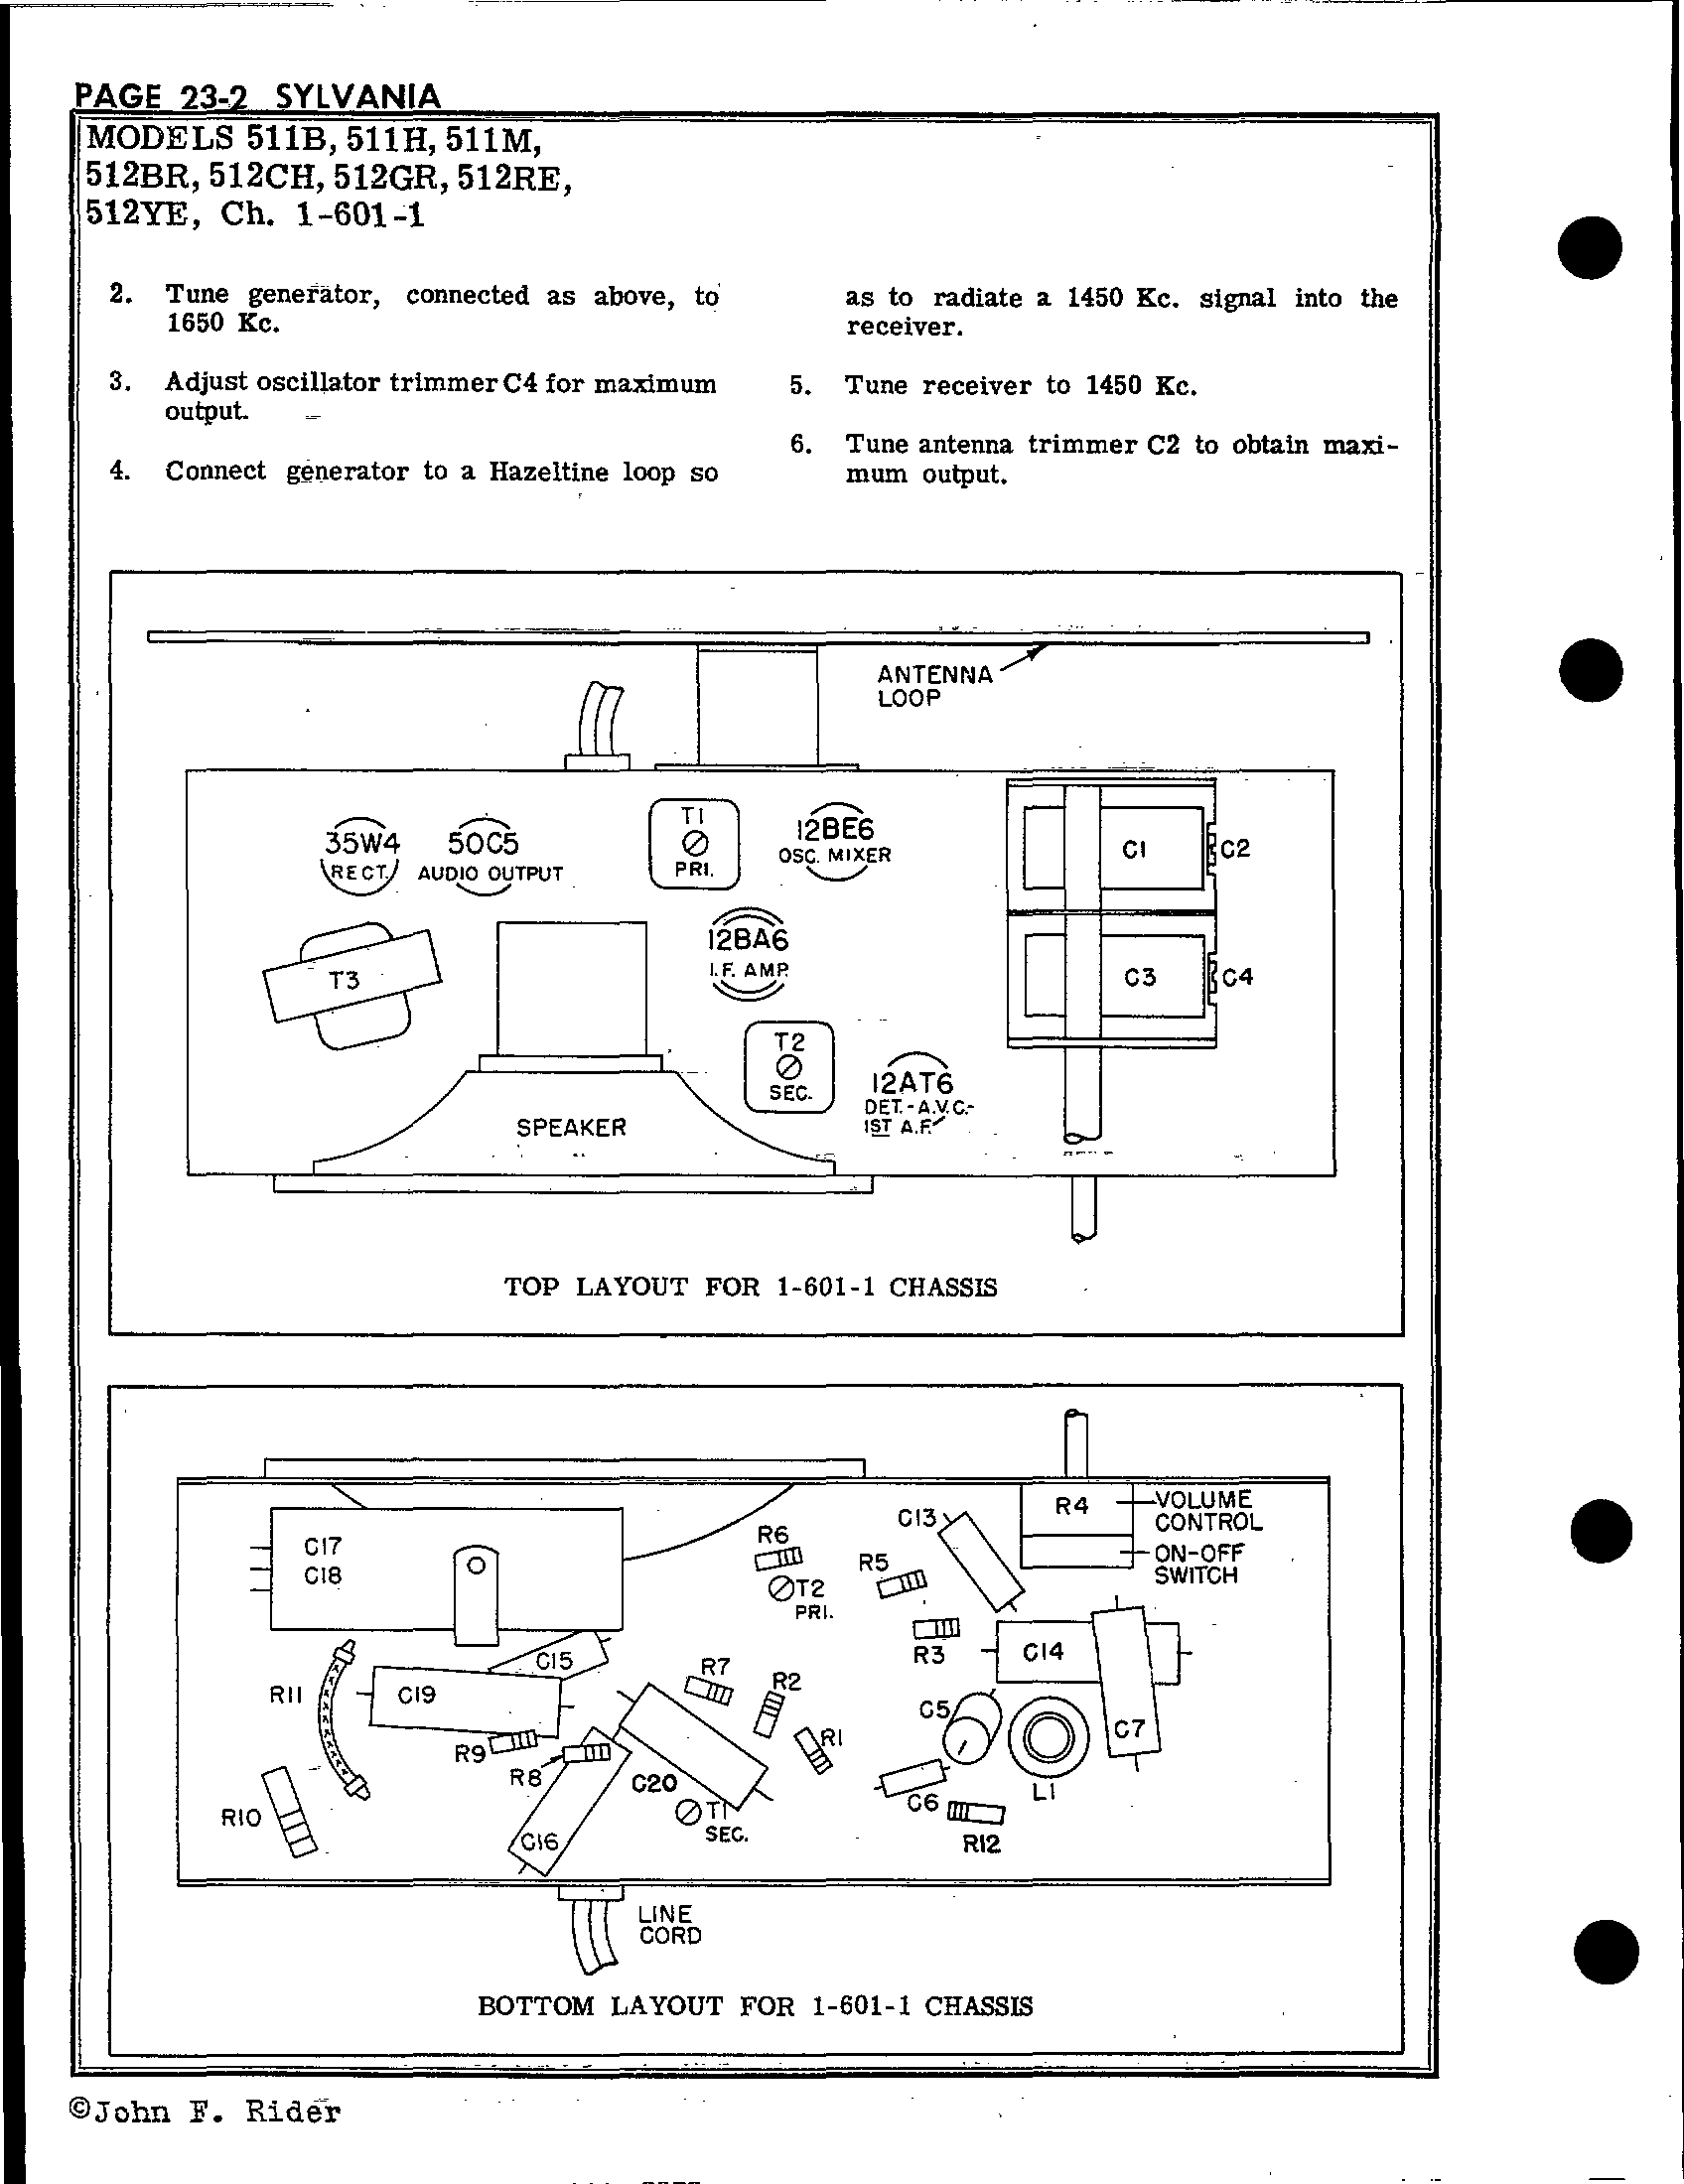 Sylvania Electric Products 511b Antique Electronic Supply. Page 2 383 Kb Rider Manual Volume 23. Wiring. Sylvania Tube Radio Schematics At Scoala.co